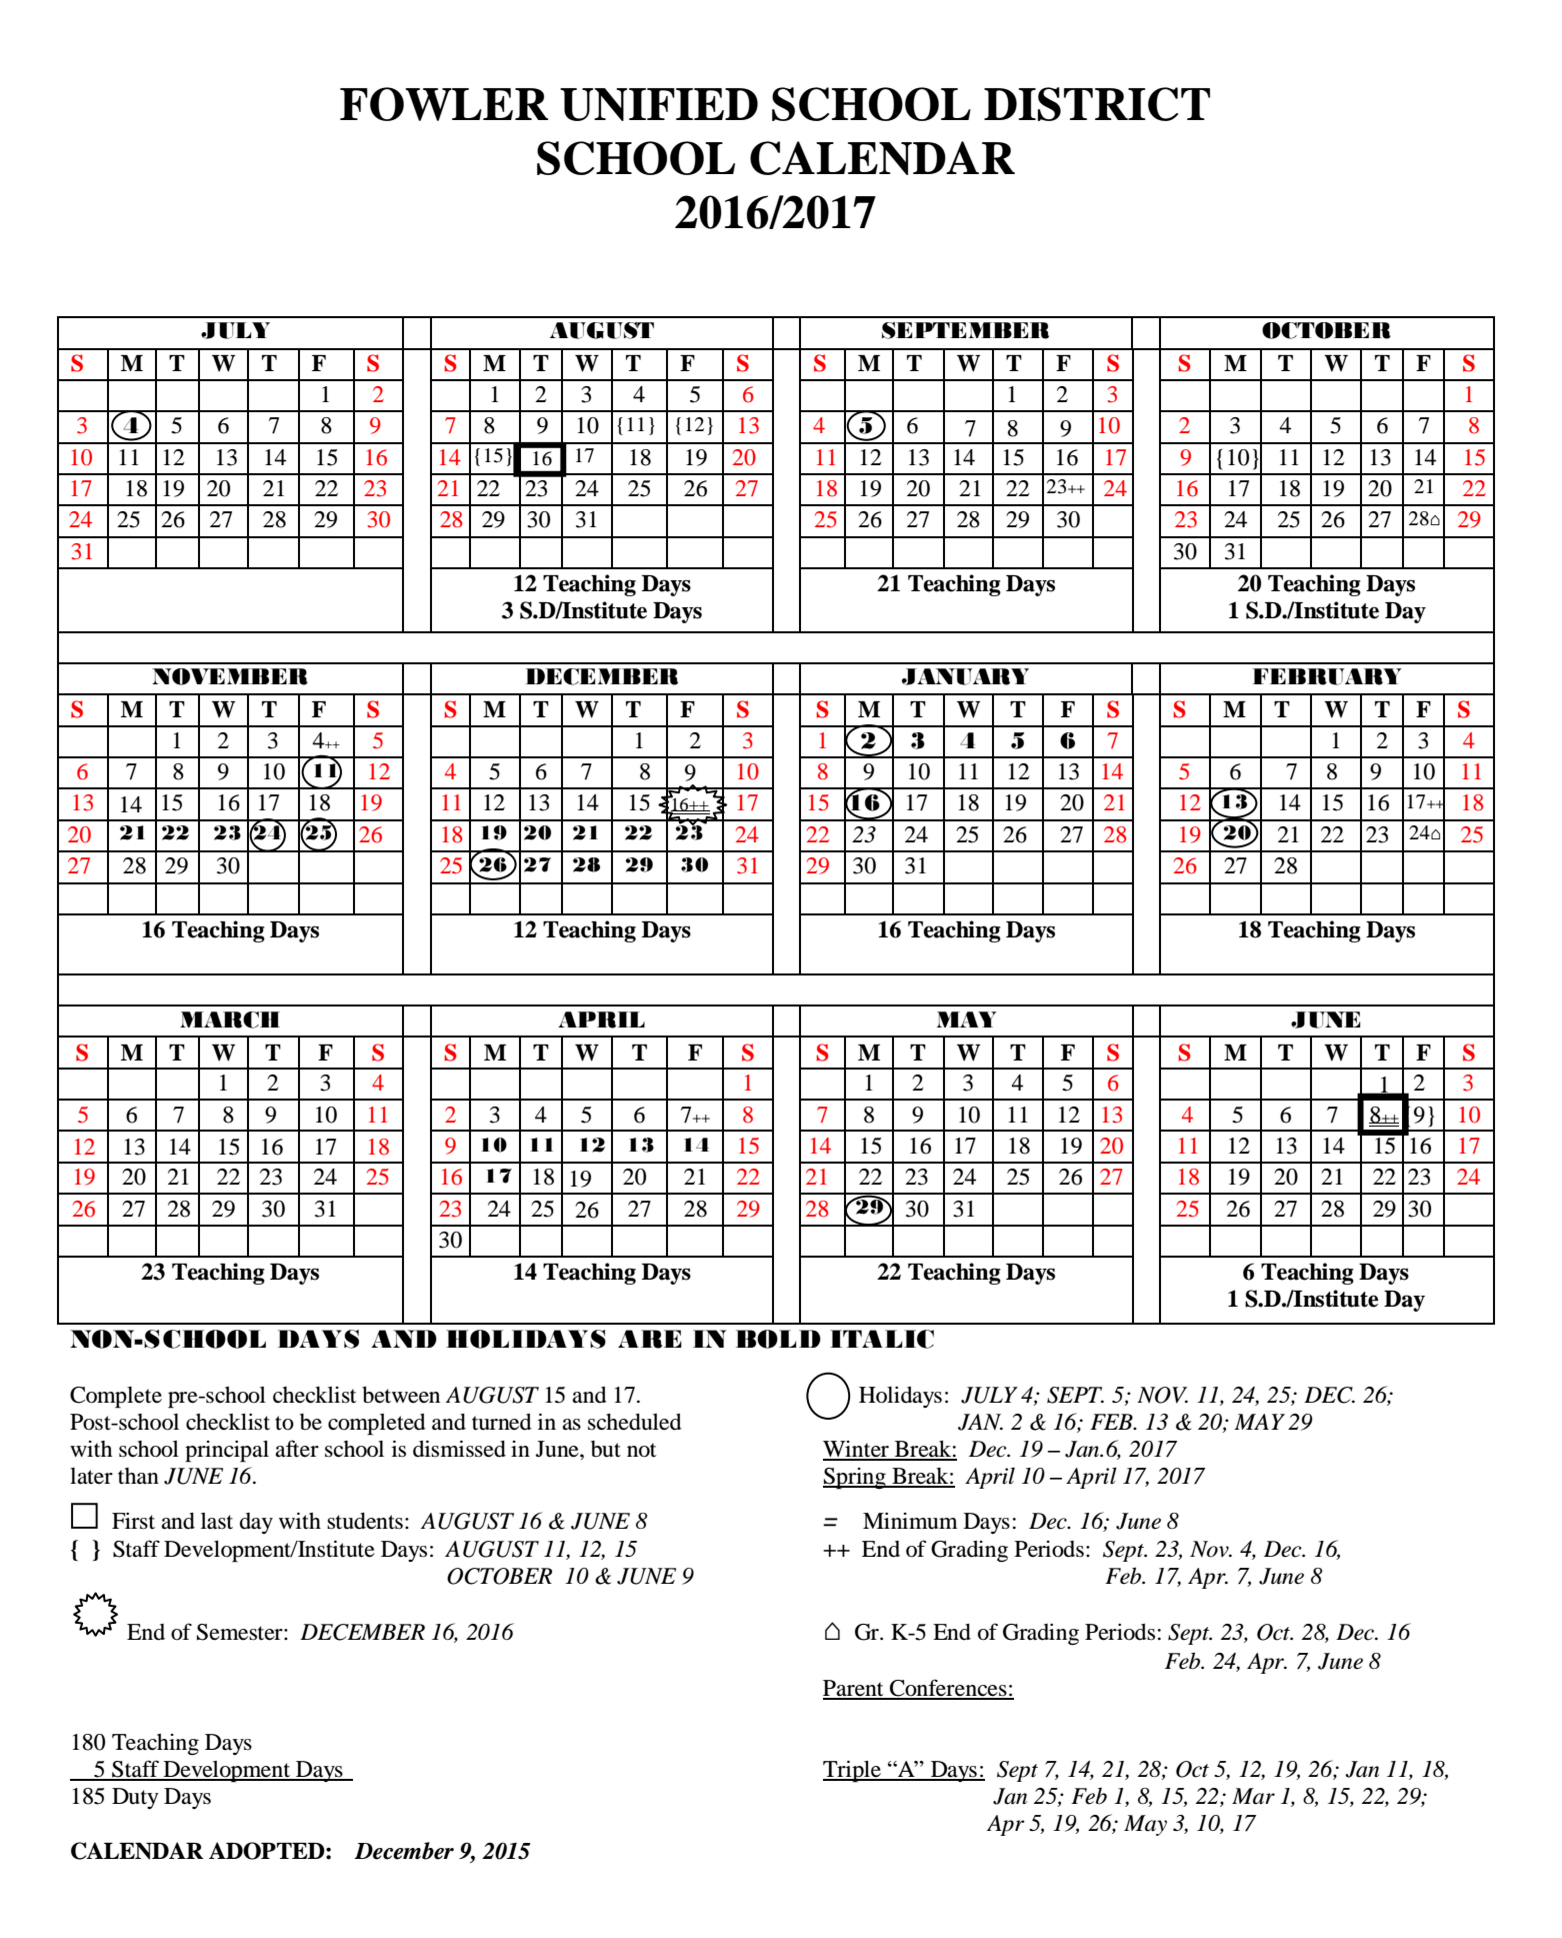 2016 2017 Calendar Fowler Unified School District